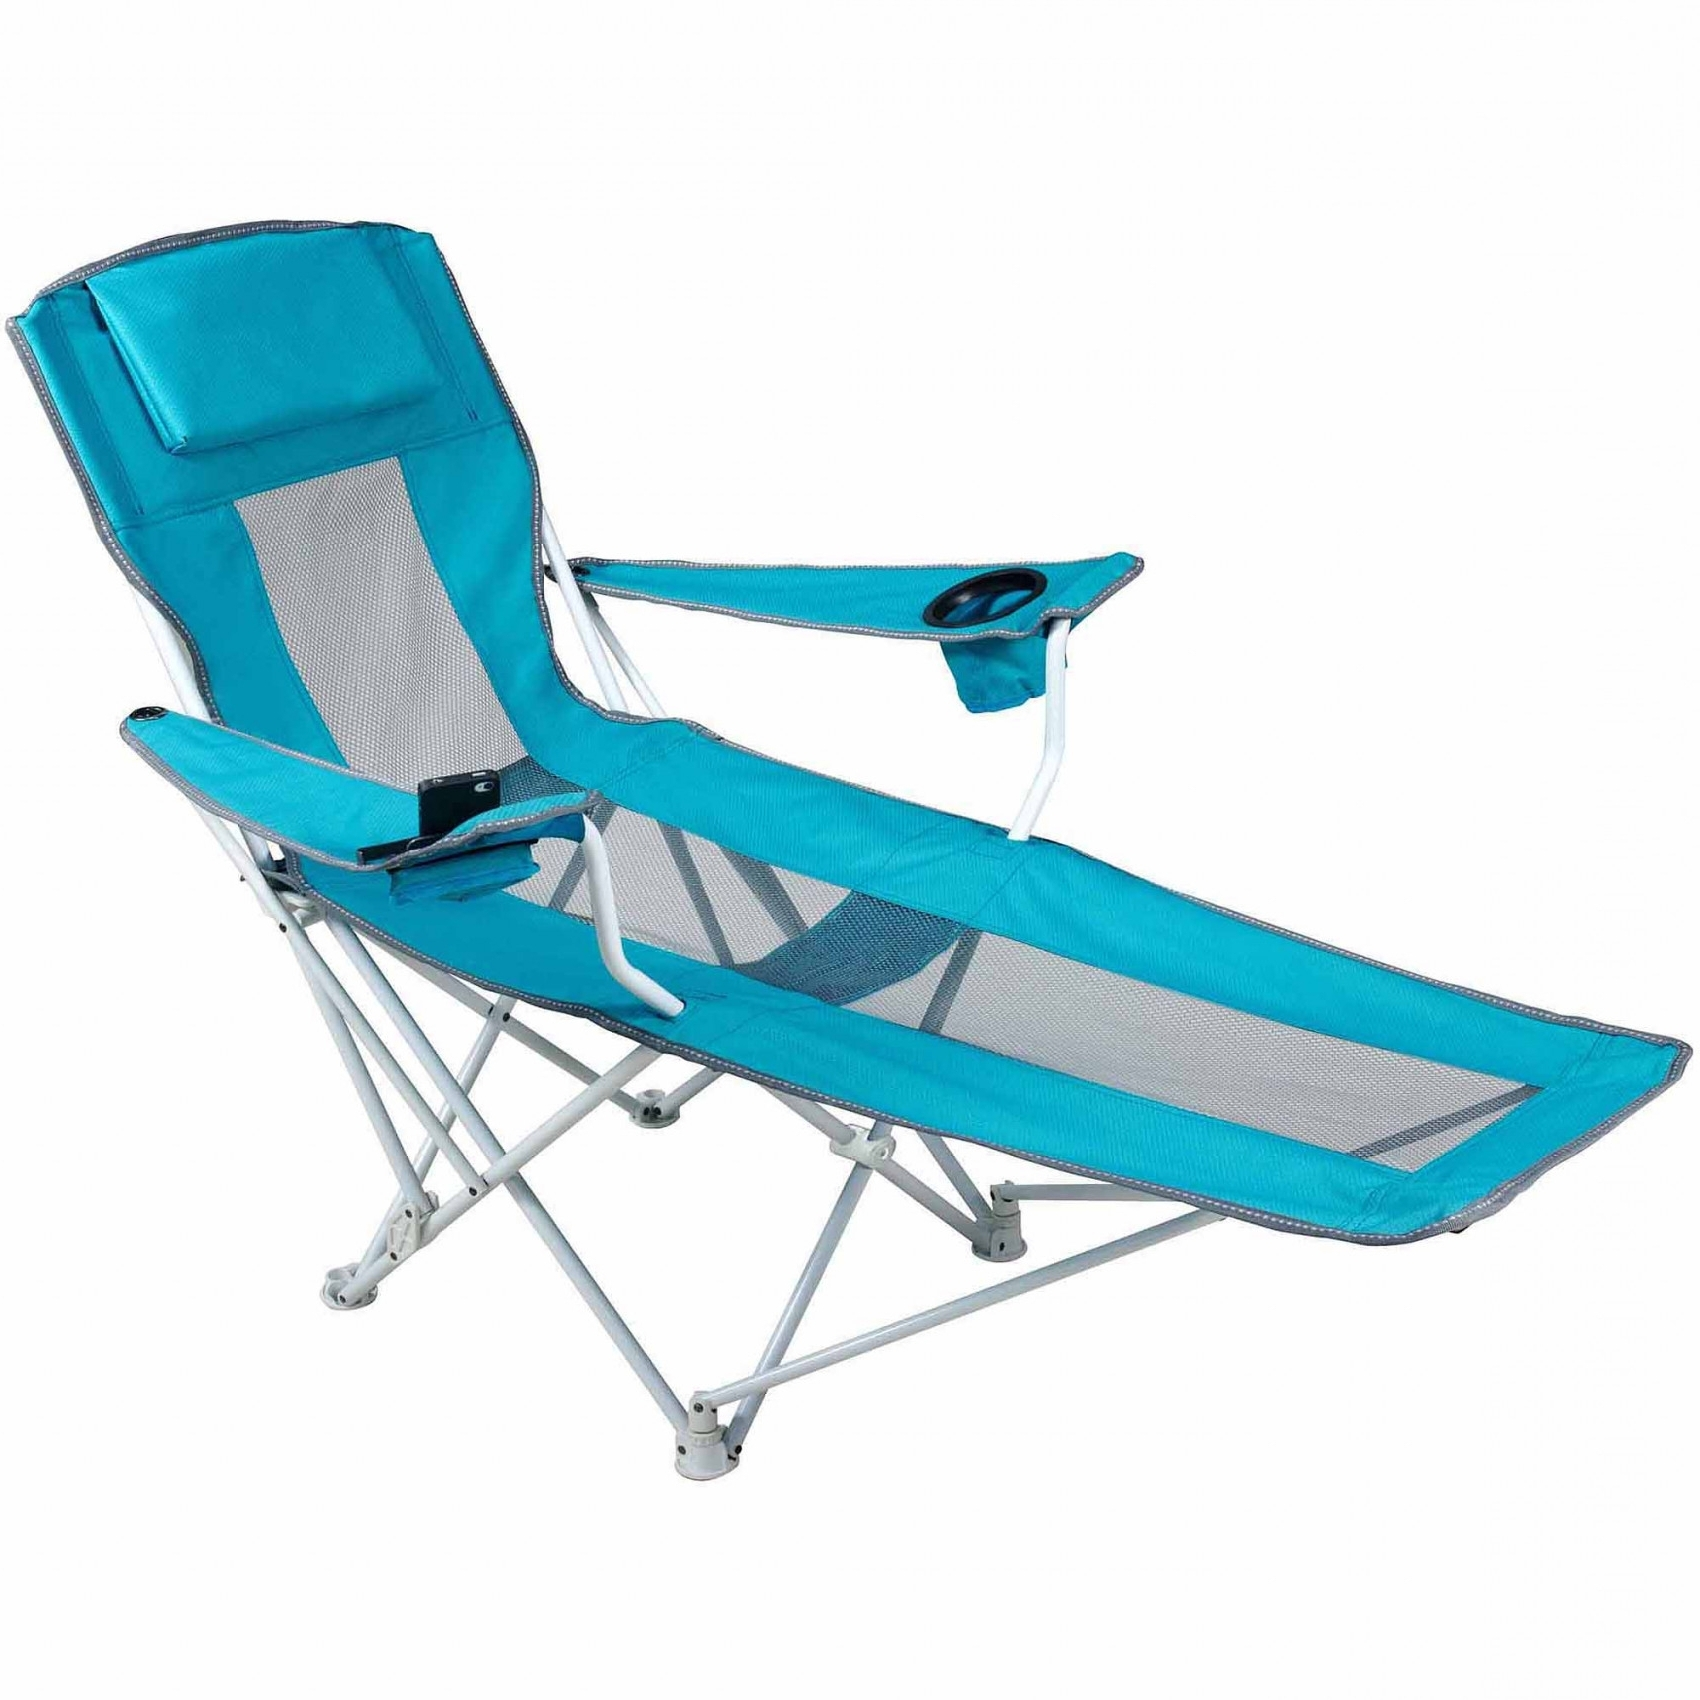 Reclining Beach Chairs In Inside Ostrich Chair Folding Chaise Lounges (View 9 of 15)